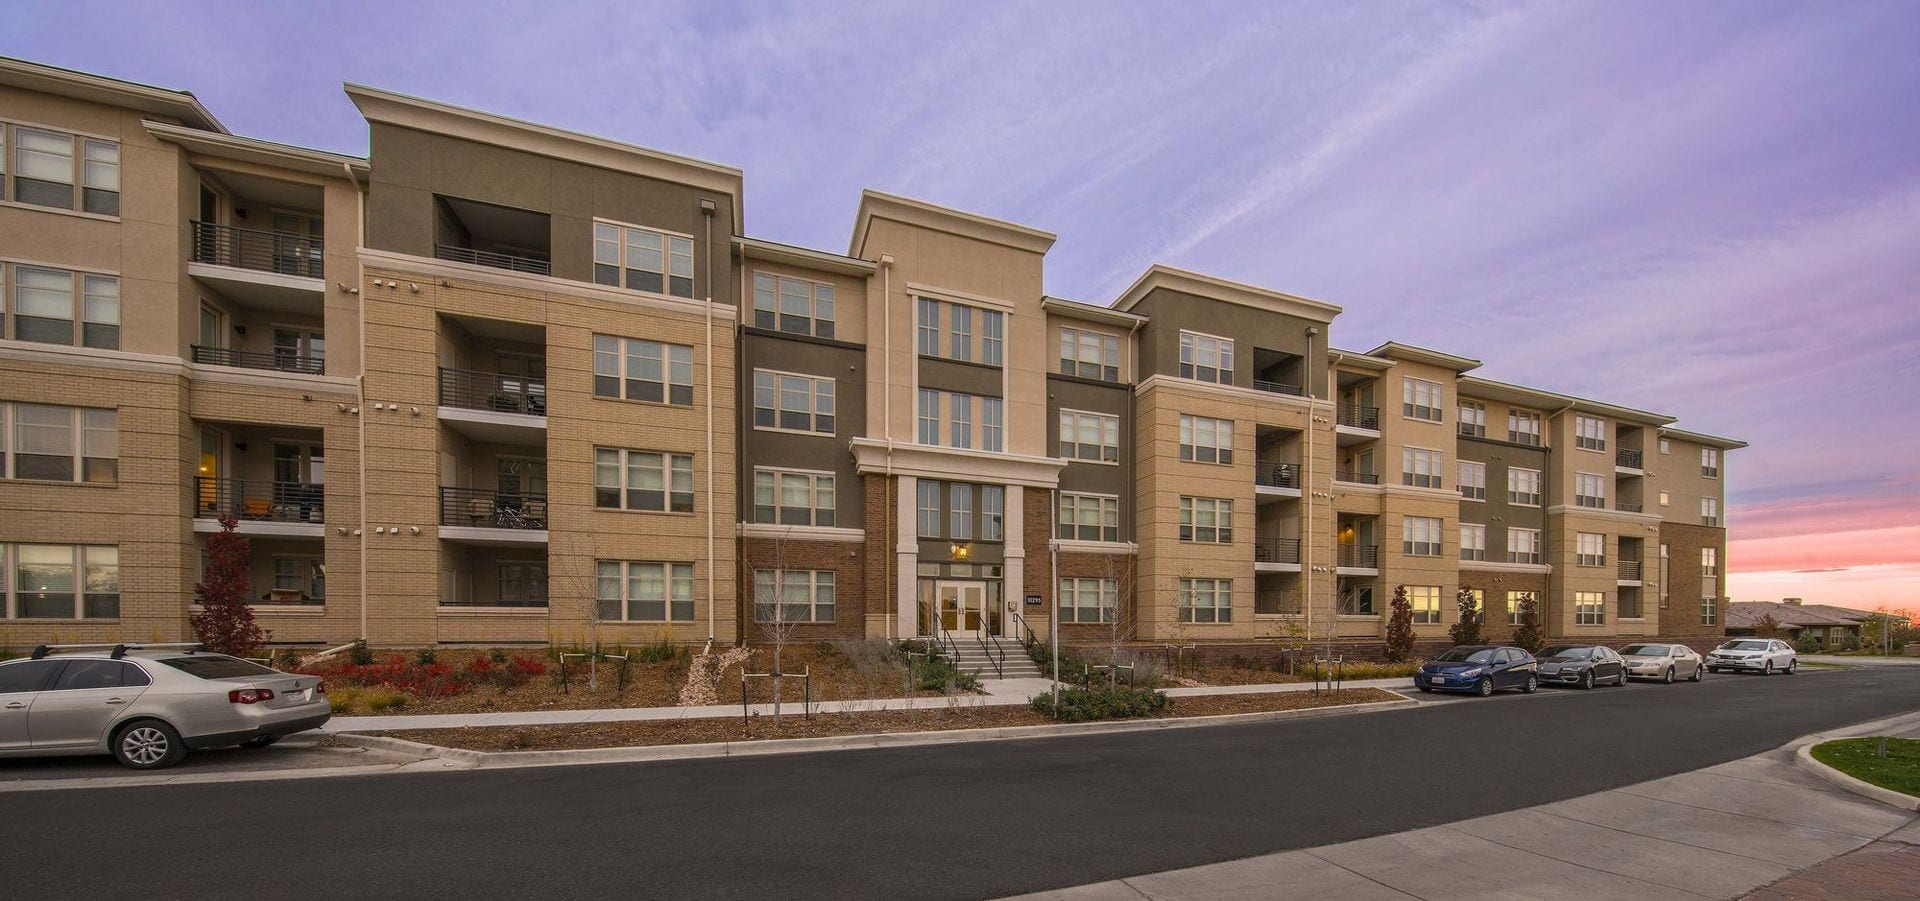 Apartments for Rent in Englewood, CO | Malbec at Vallagio - Home